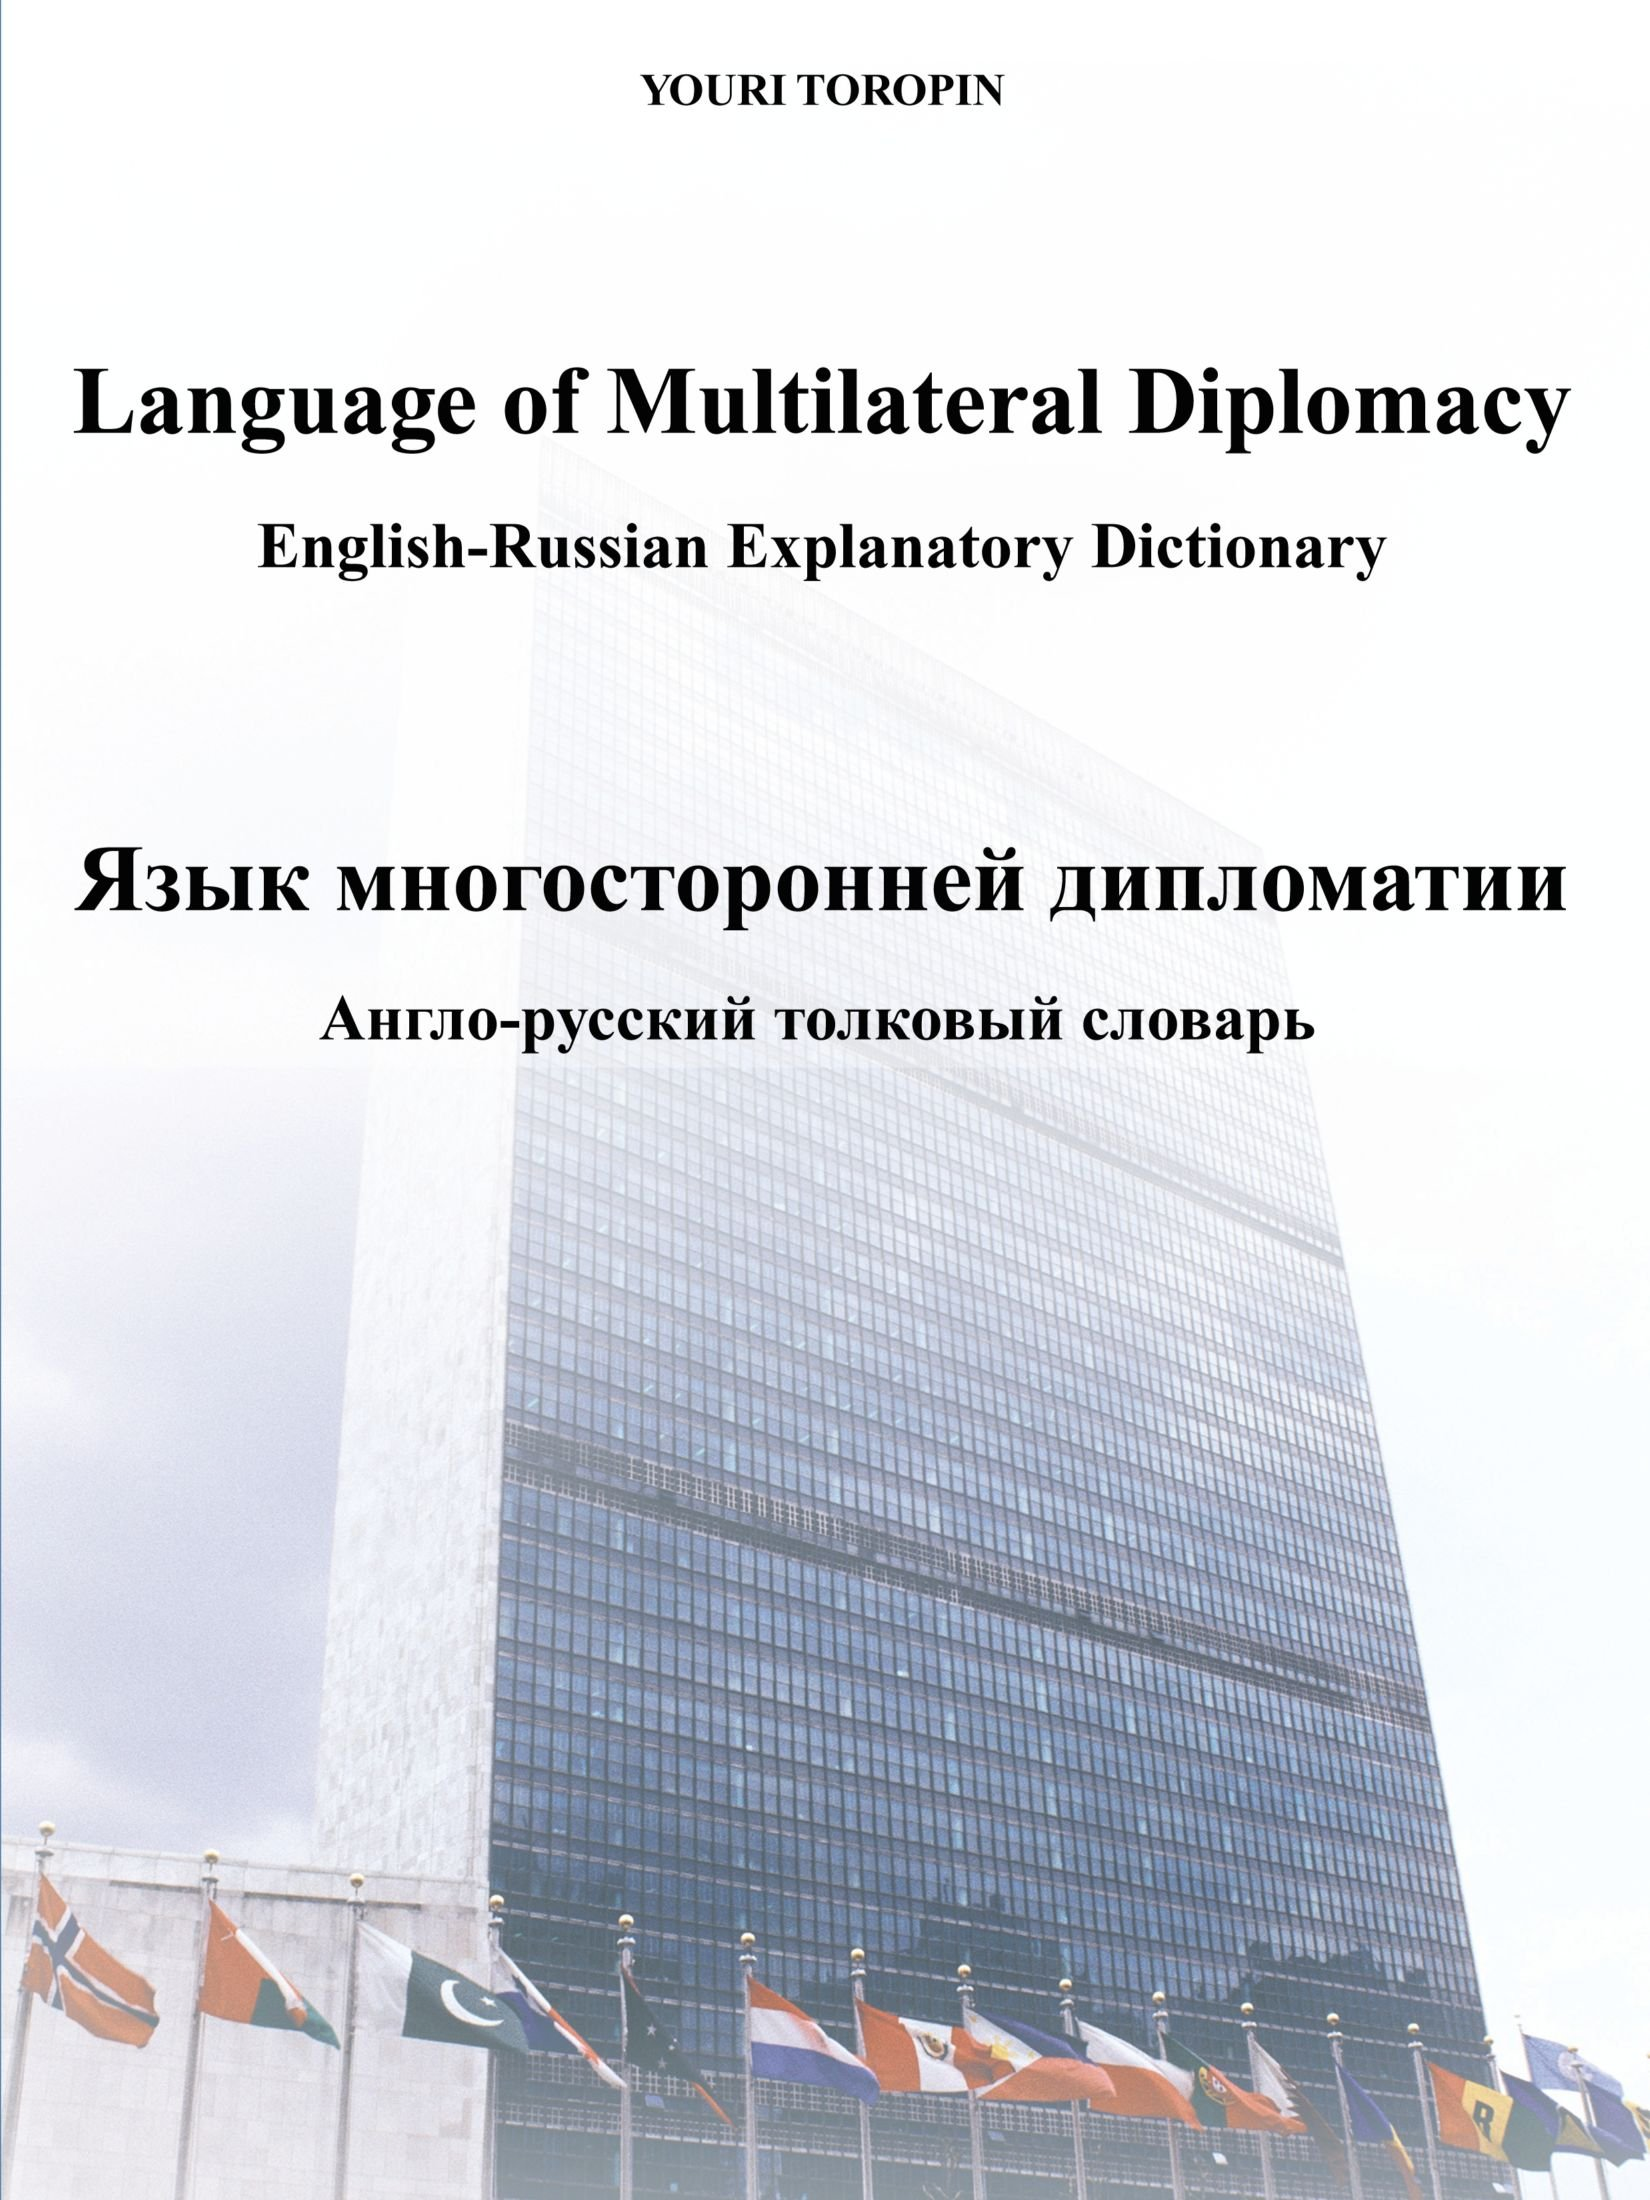 Language of Multilateral Diplomacy: English-Russian Explanatory Dictionary (Russian Edition) by AuthorHouse